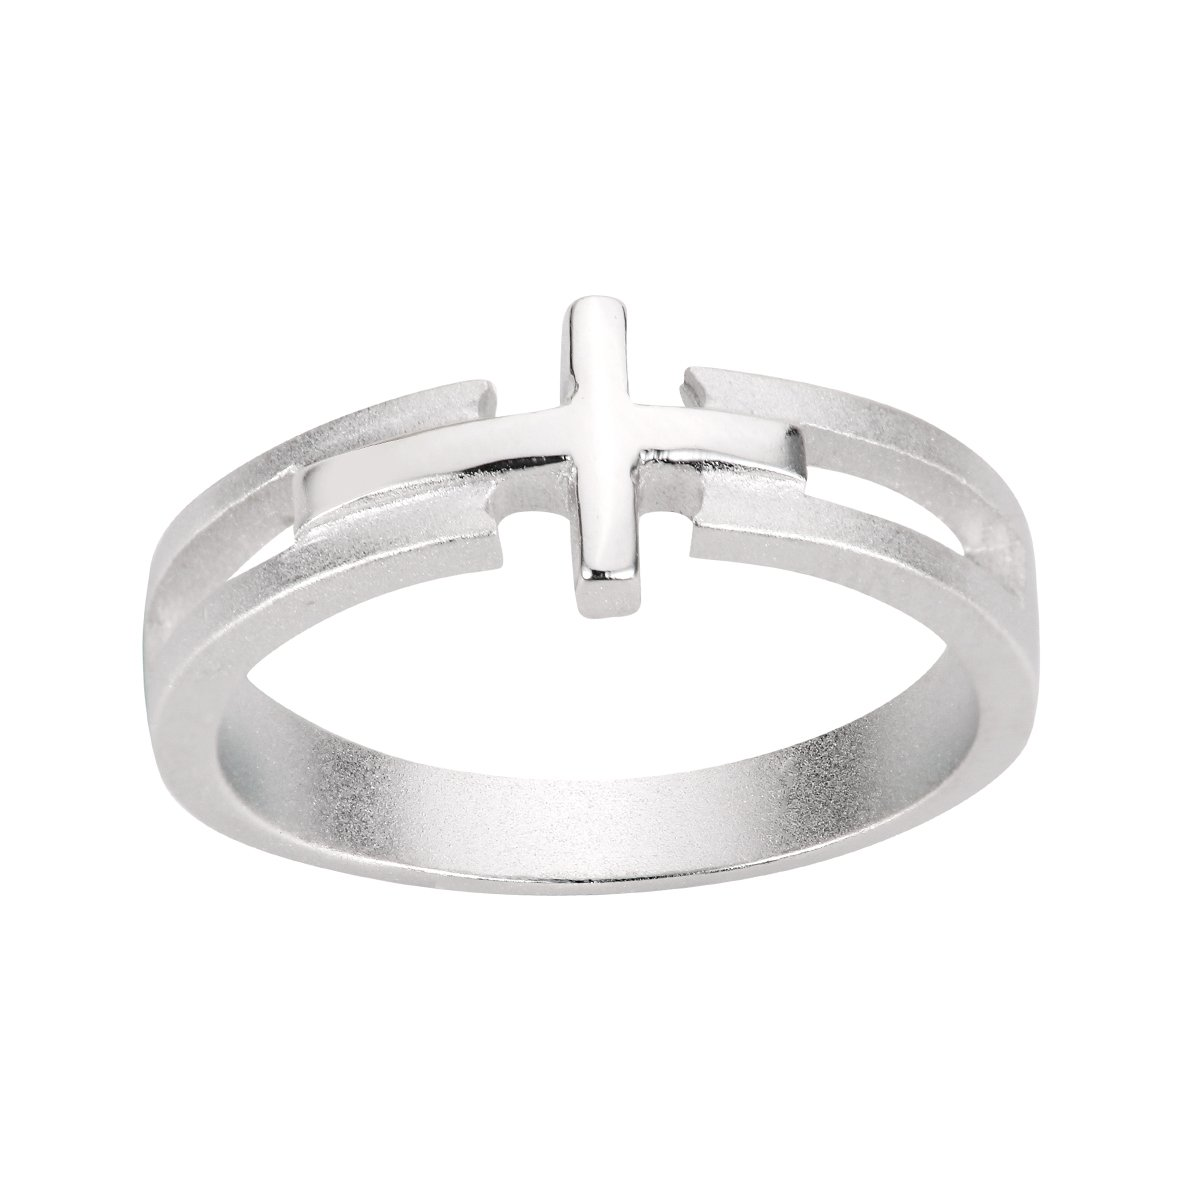 CloseoutWarehouse Sterling Silver Salvation Sideway Cross Ring Sizes 3-13